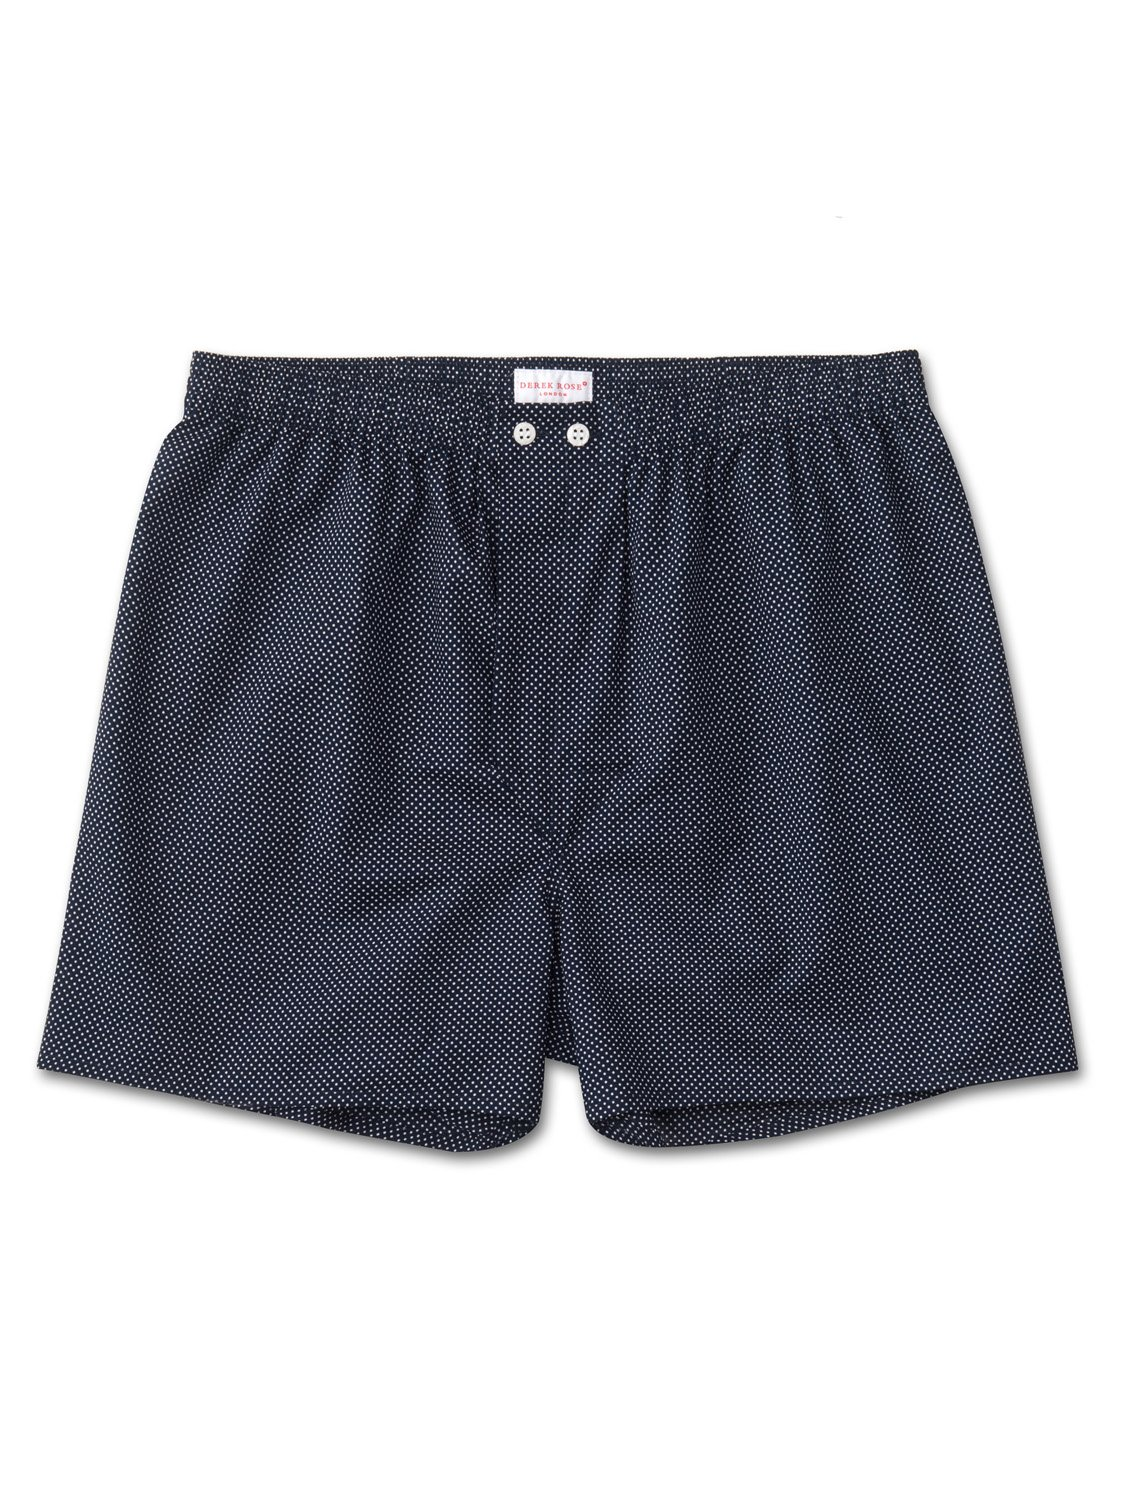 Men's Classic Fit Boxer Shorts Plaza 21 Pure Cotton Batiste Navy